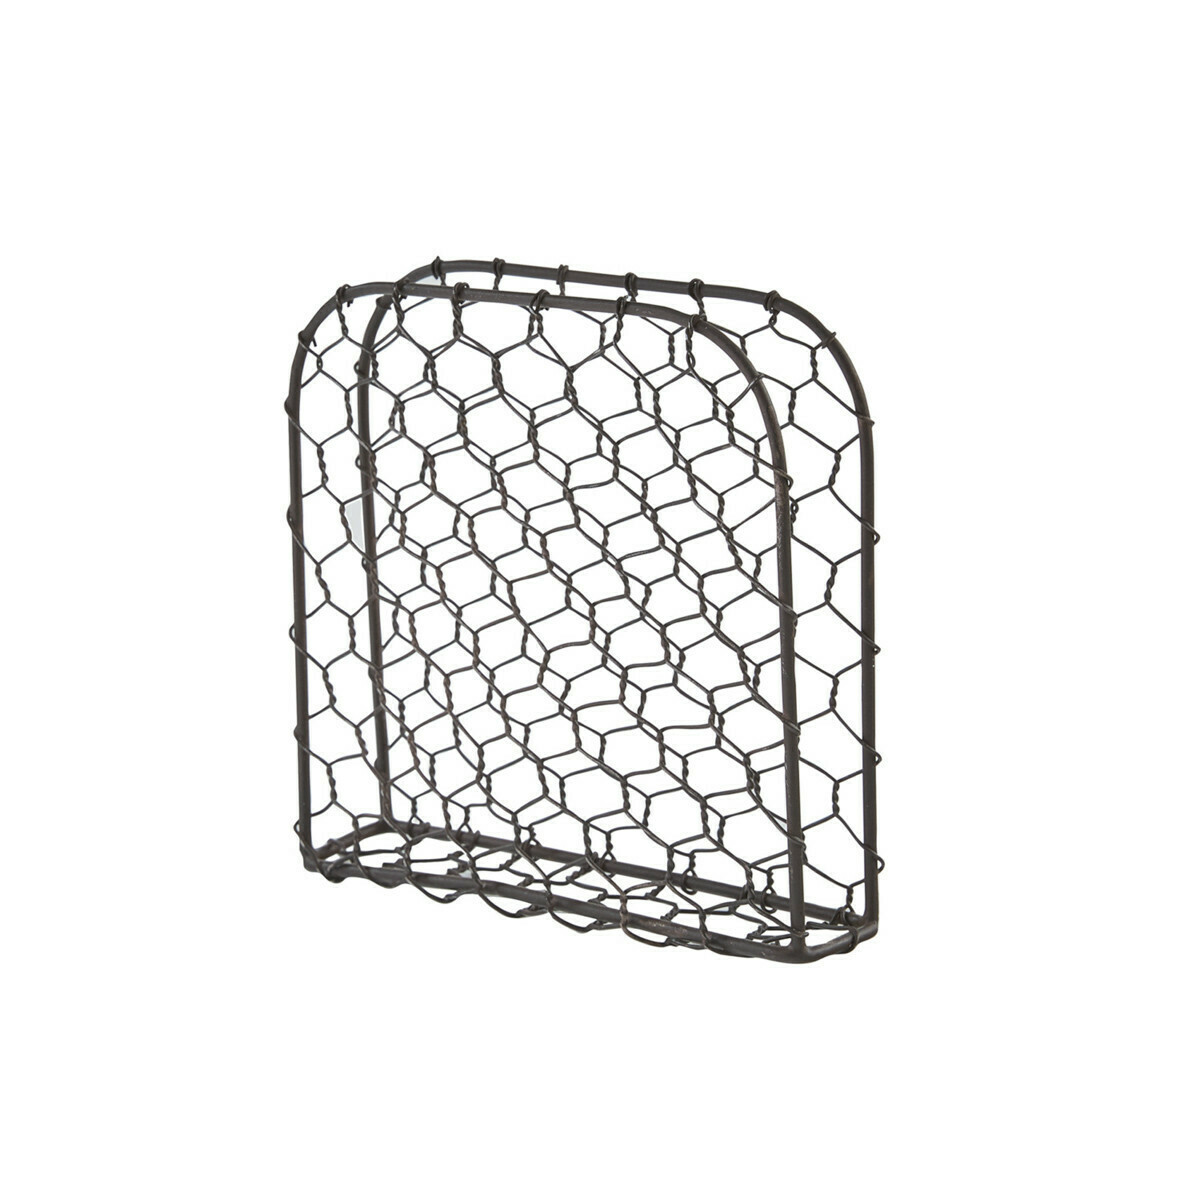 Chicken Wire Napkin Holder